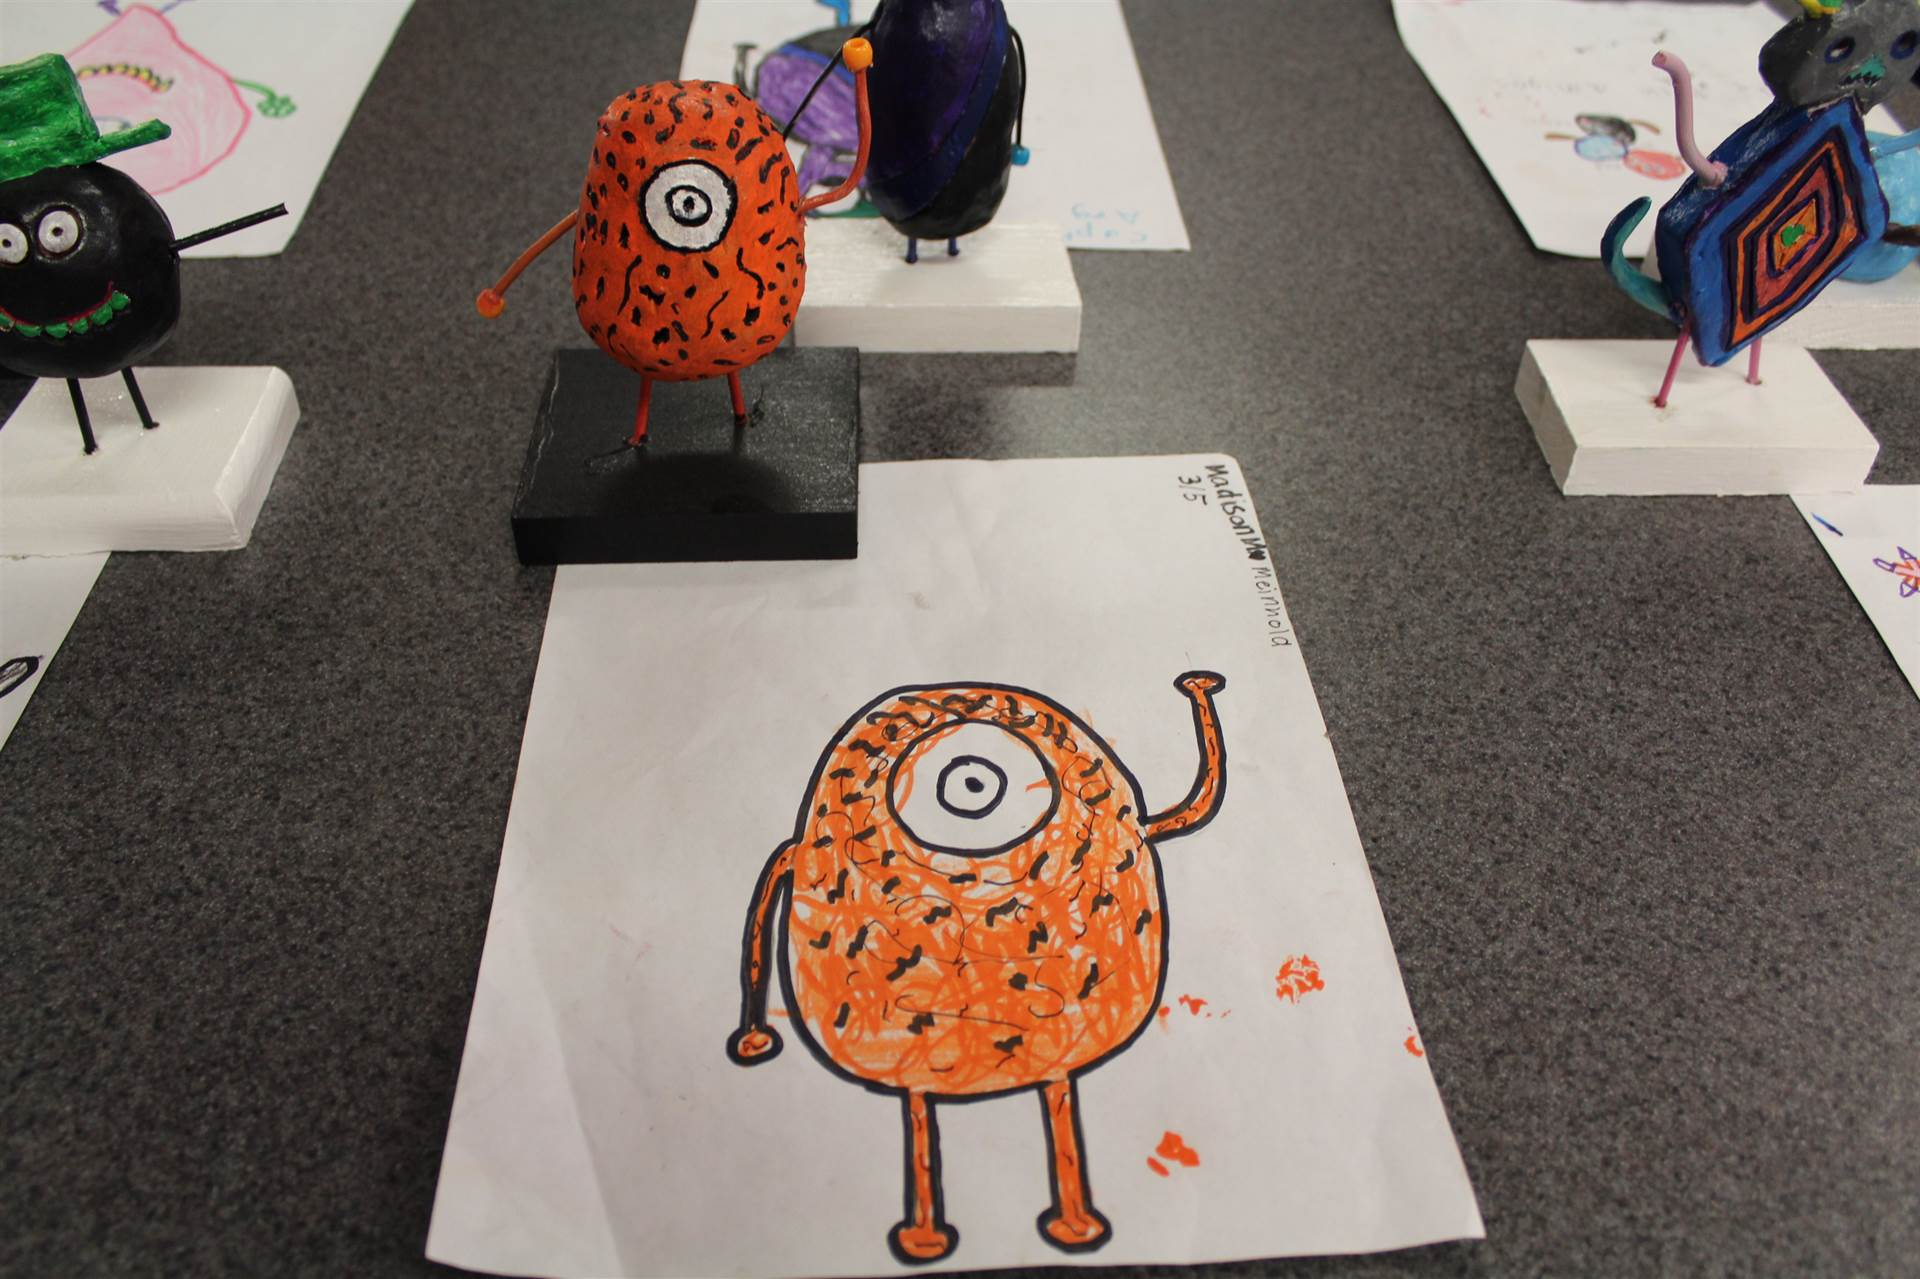 monster 3 d sculpture next to drawn picture 92